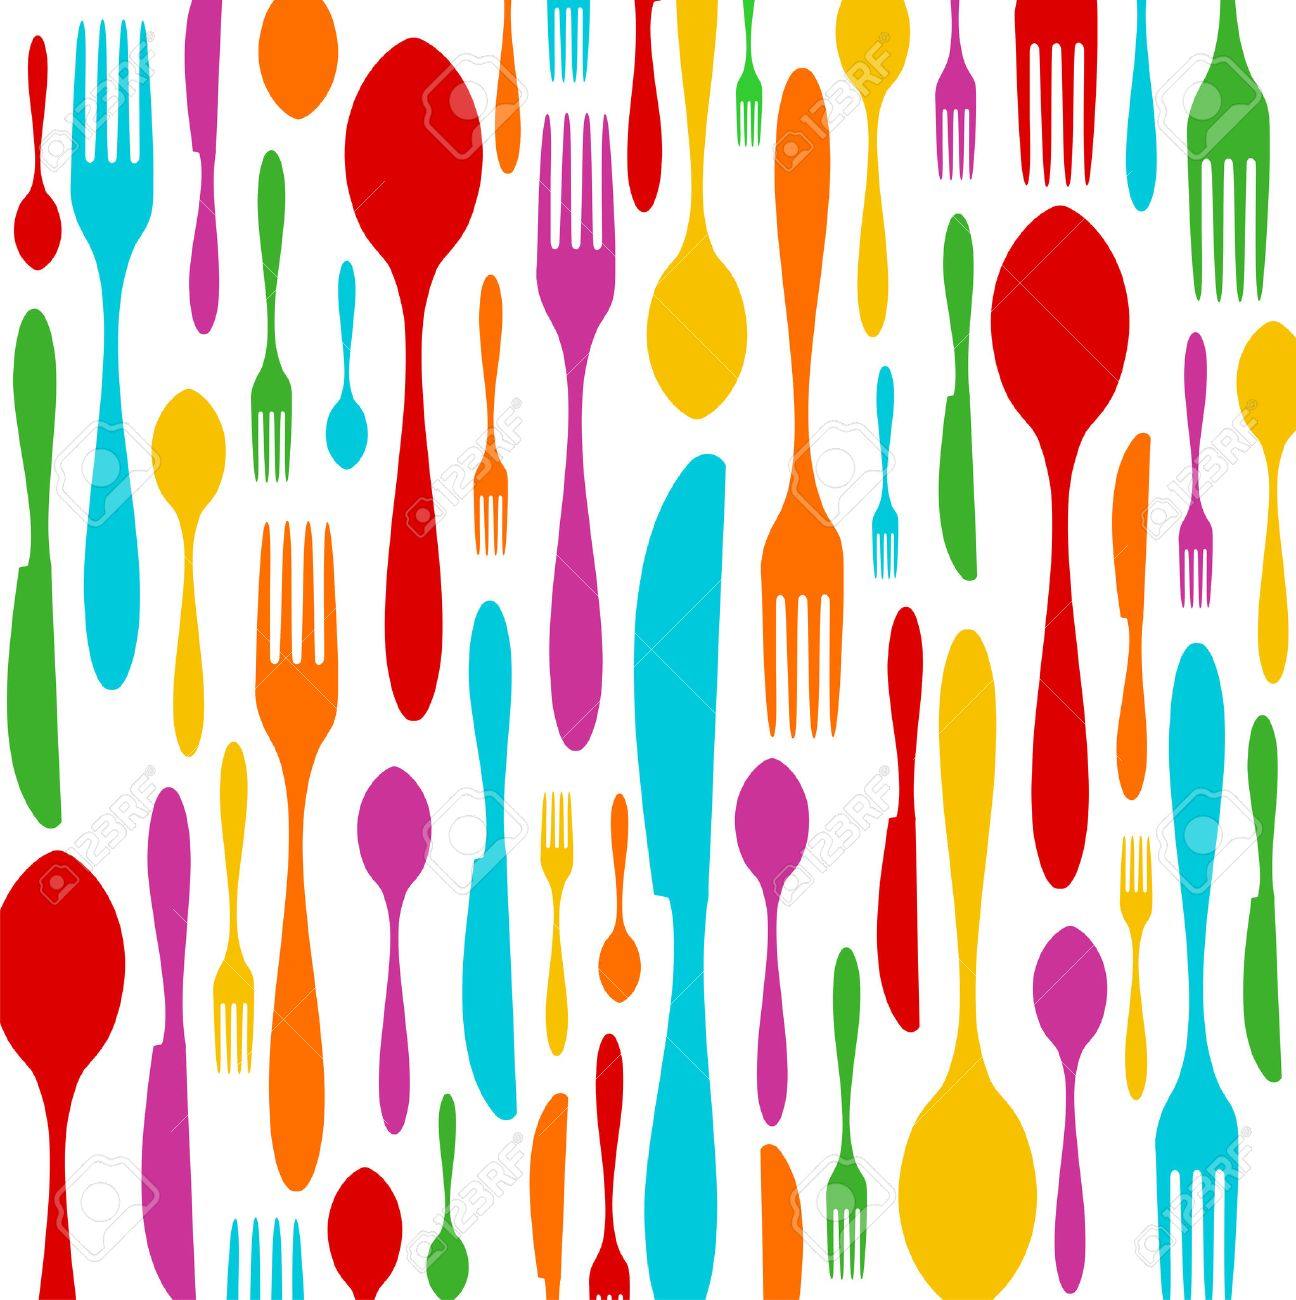 Cutlery Colorful Silhouettes Background Spoon Knife And Fork 1296x1300